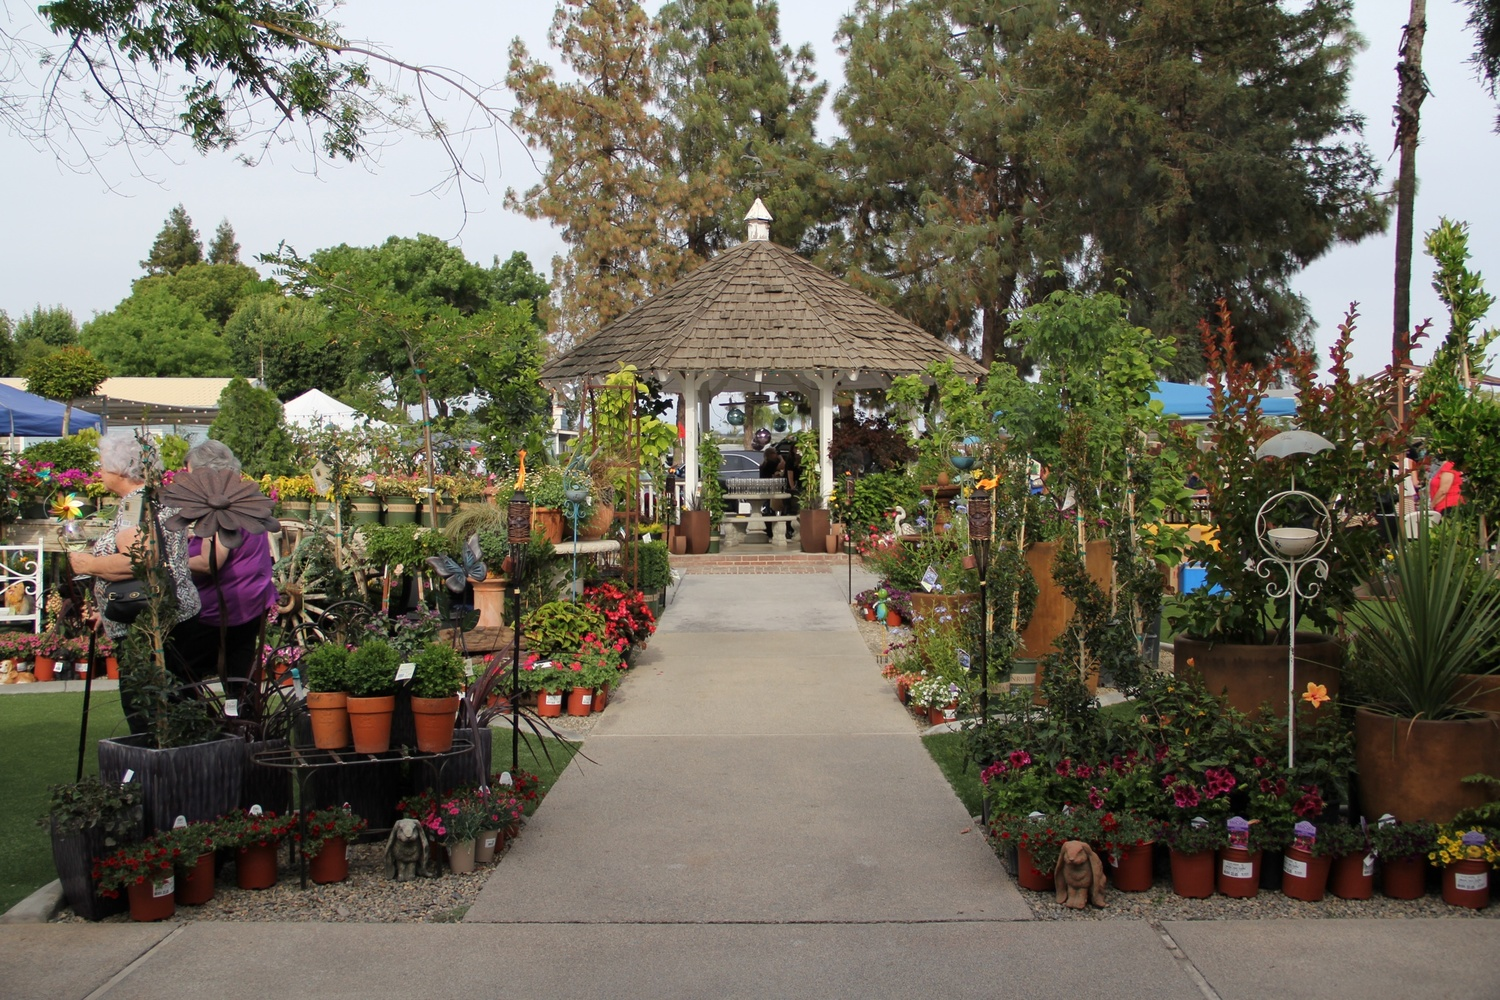 Willow Gardens Nursery